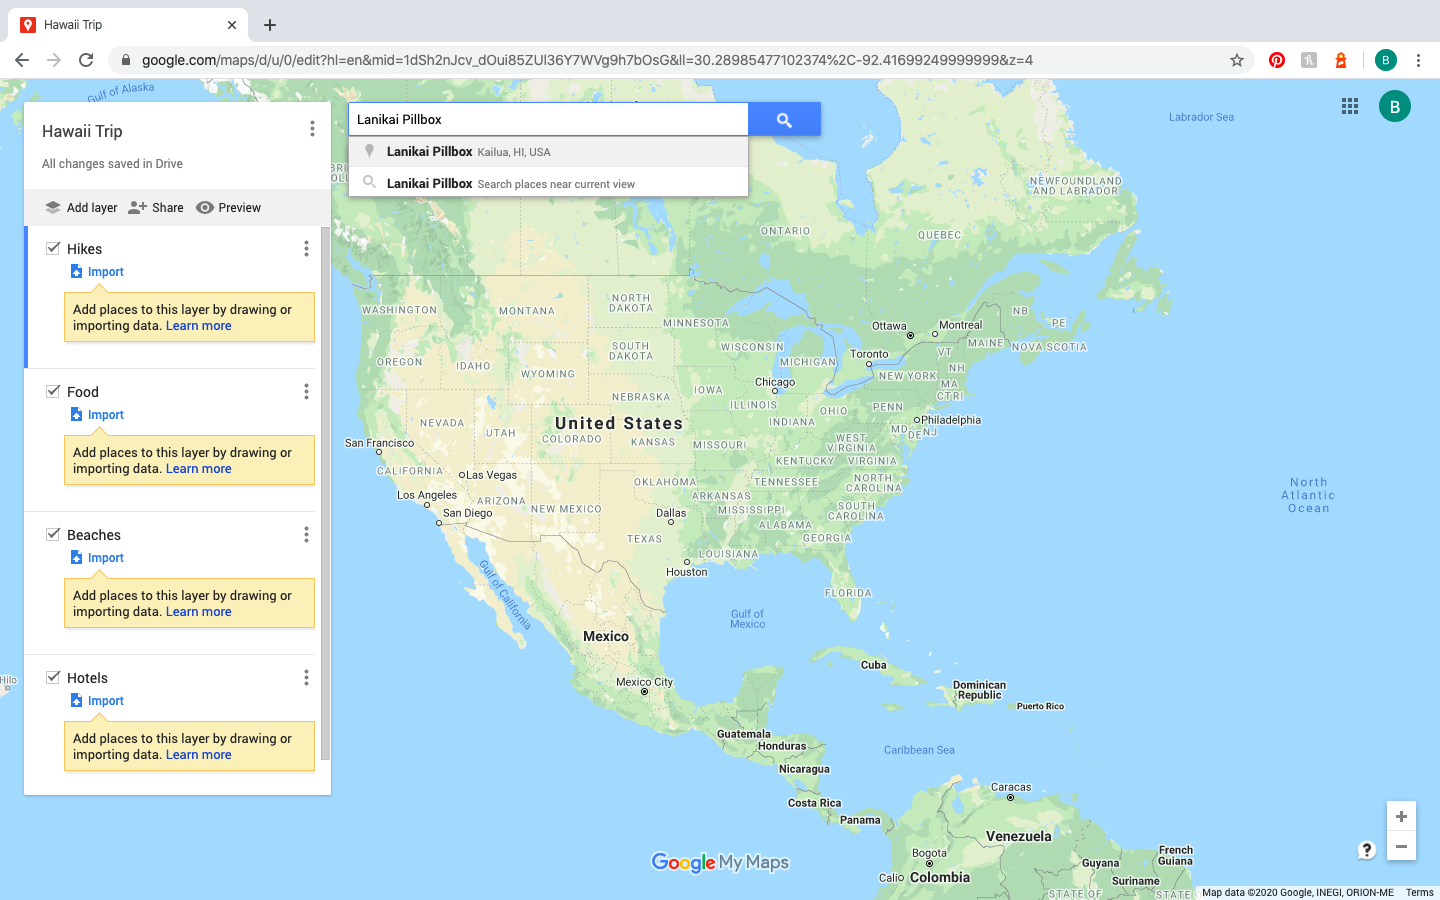 searching for location on Google Maps